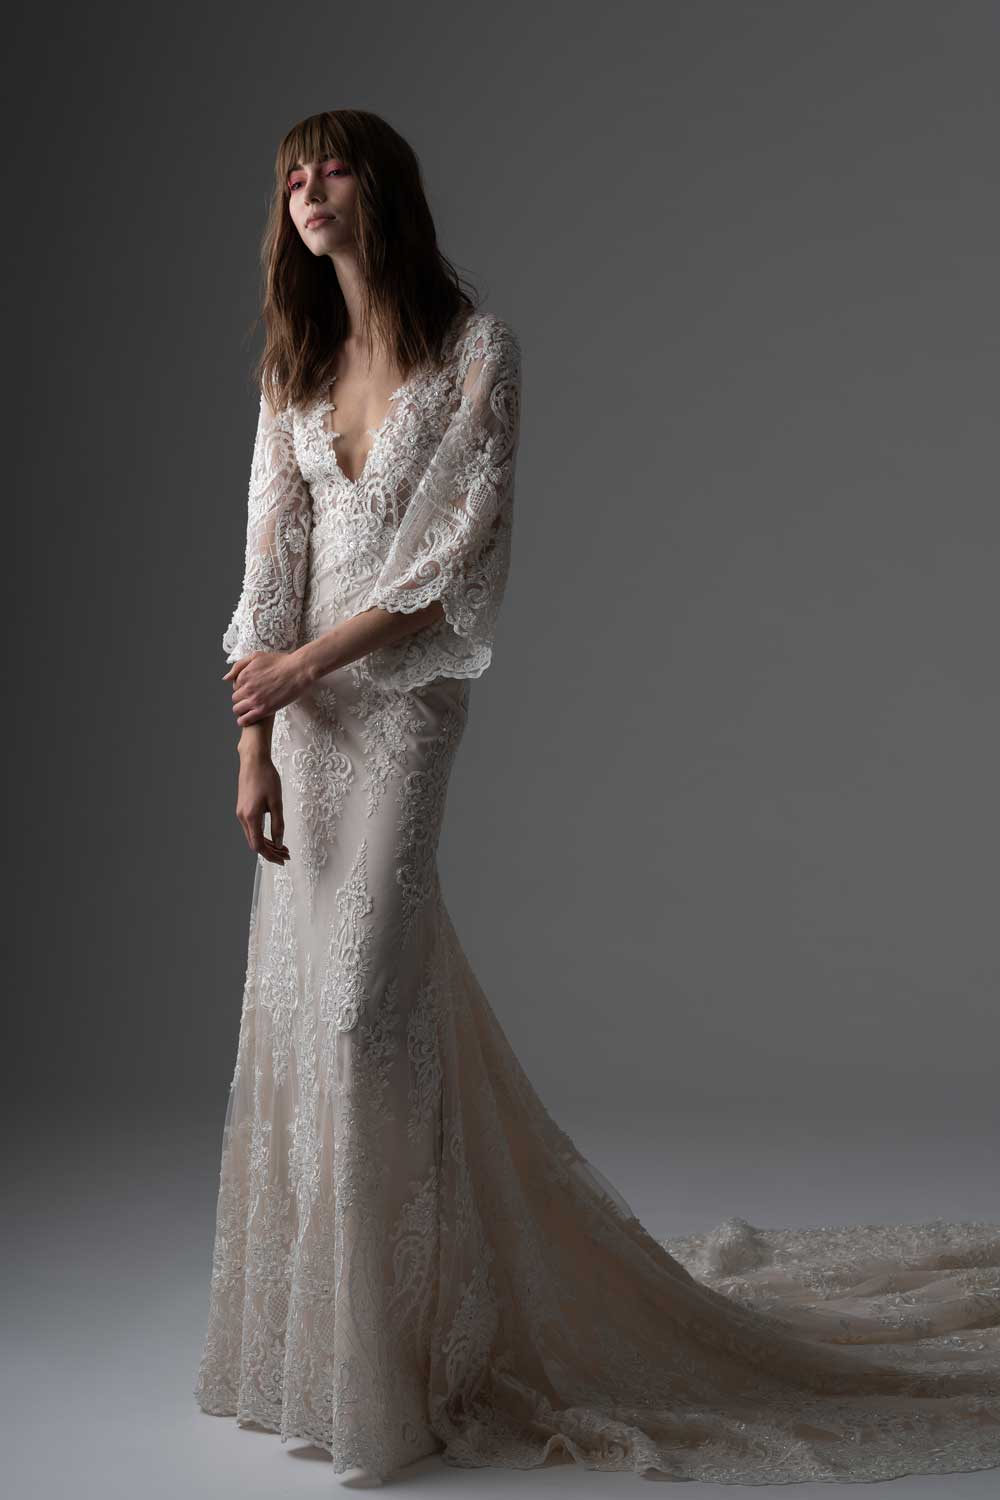 70's Inspired Bridal Gowns by Rivini